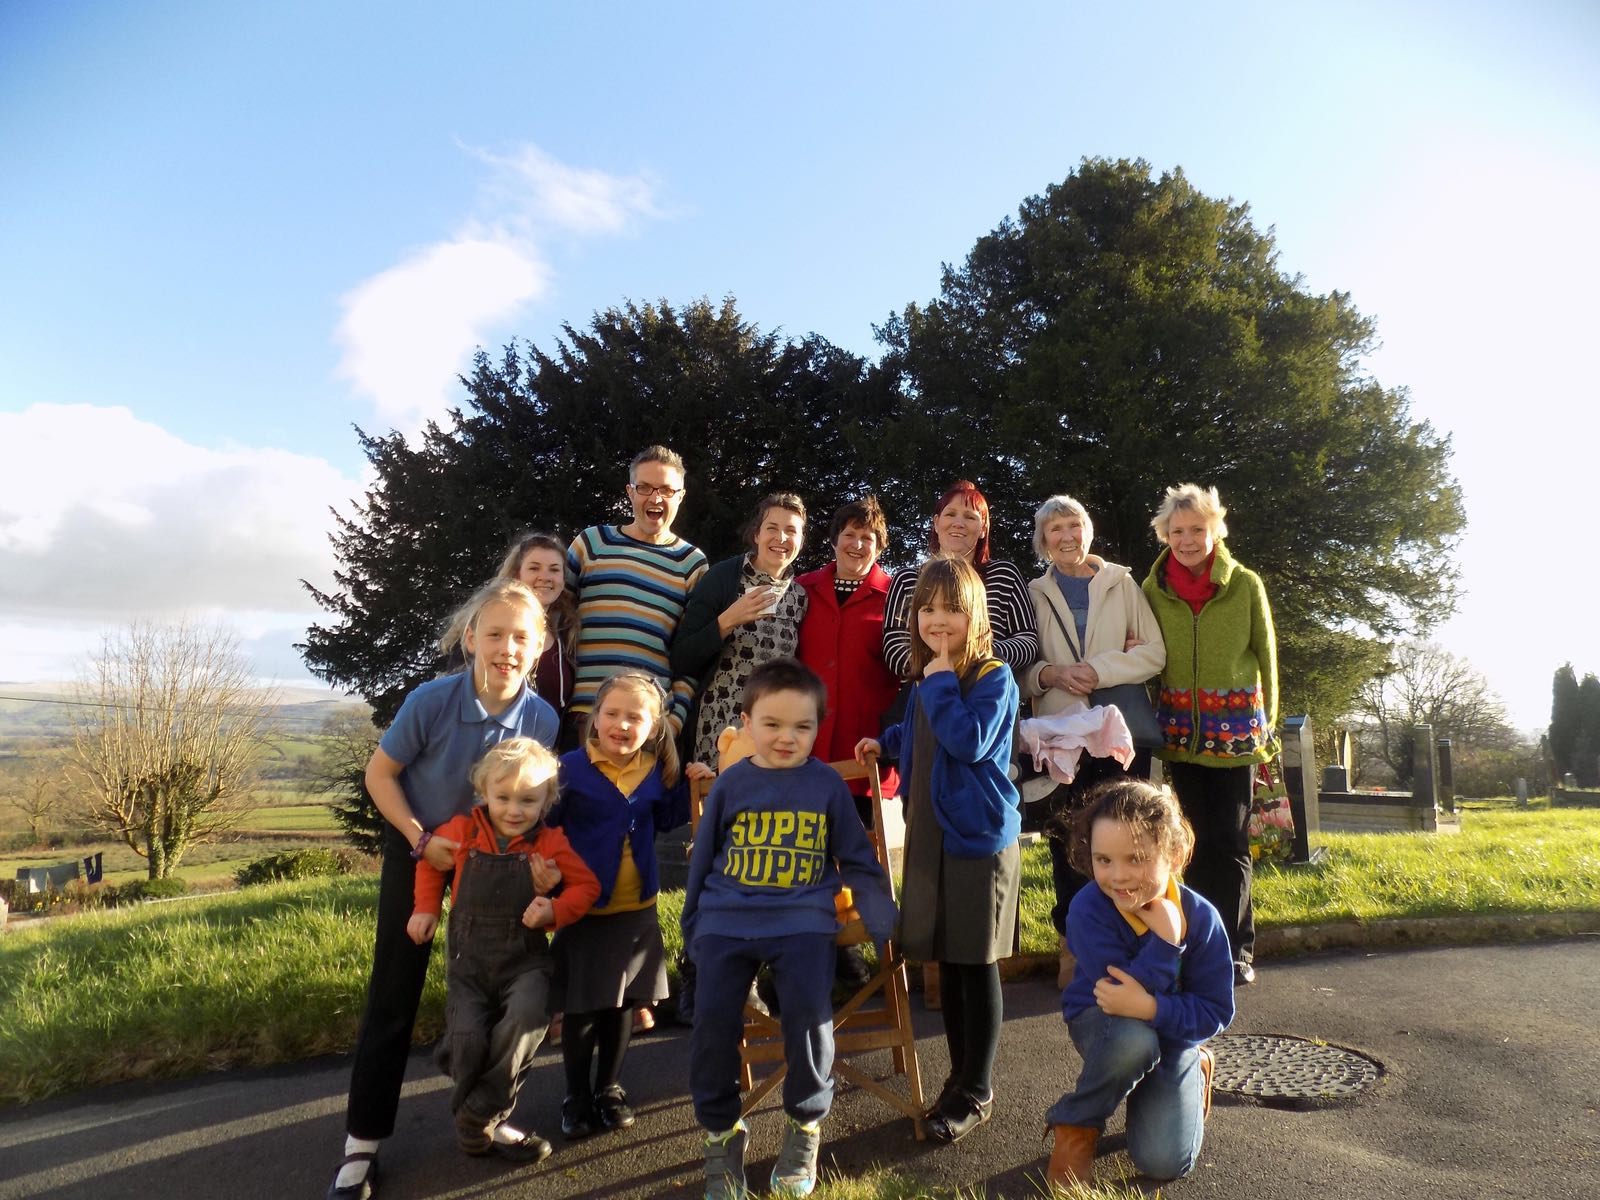 The Vestry Venture group outside in sunny Llansadwrn